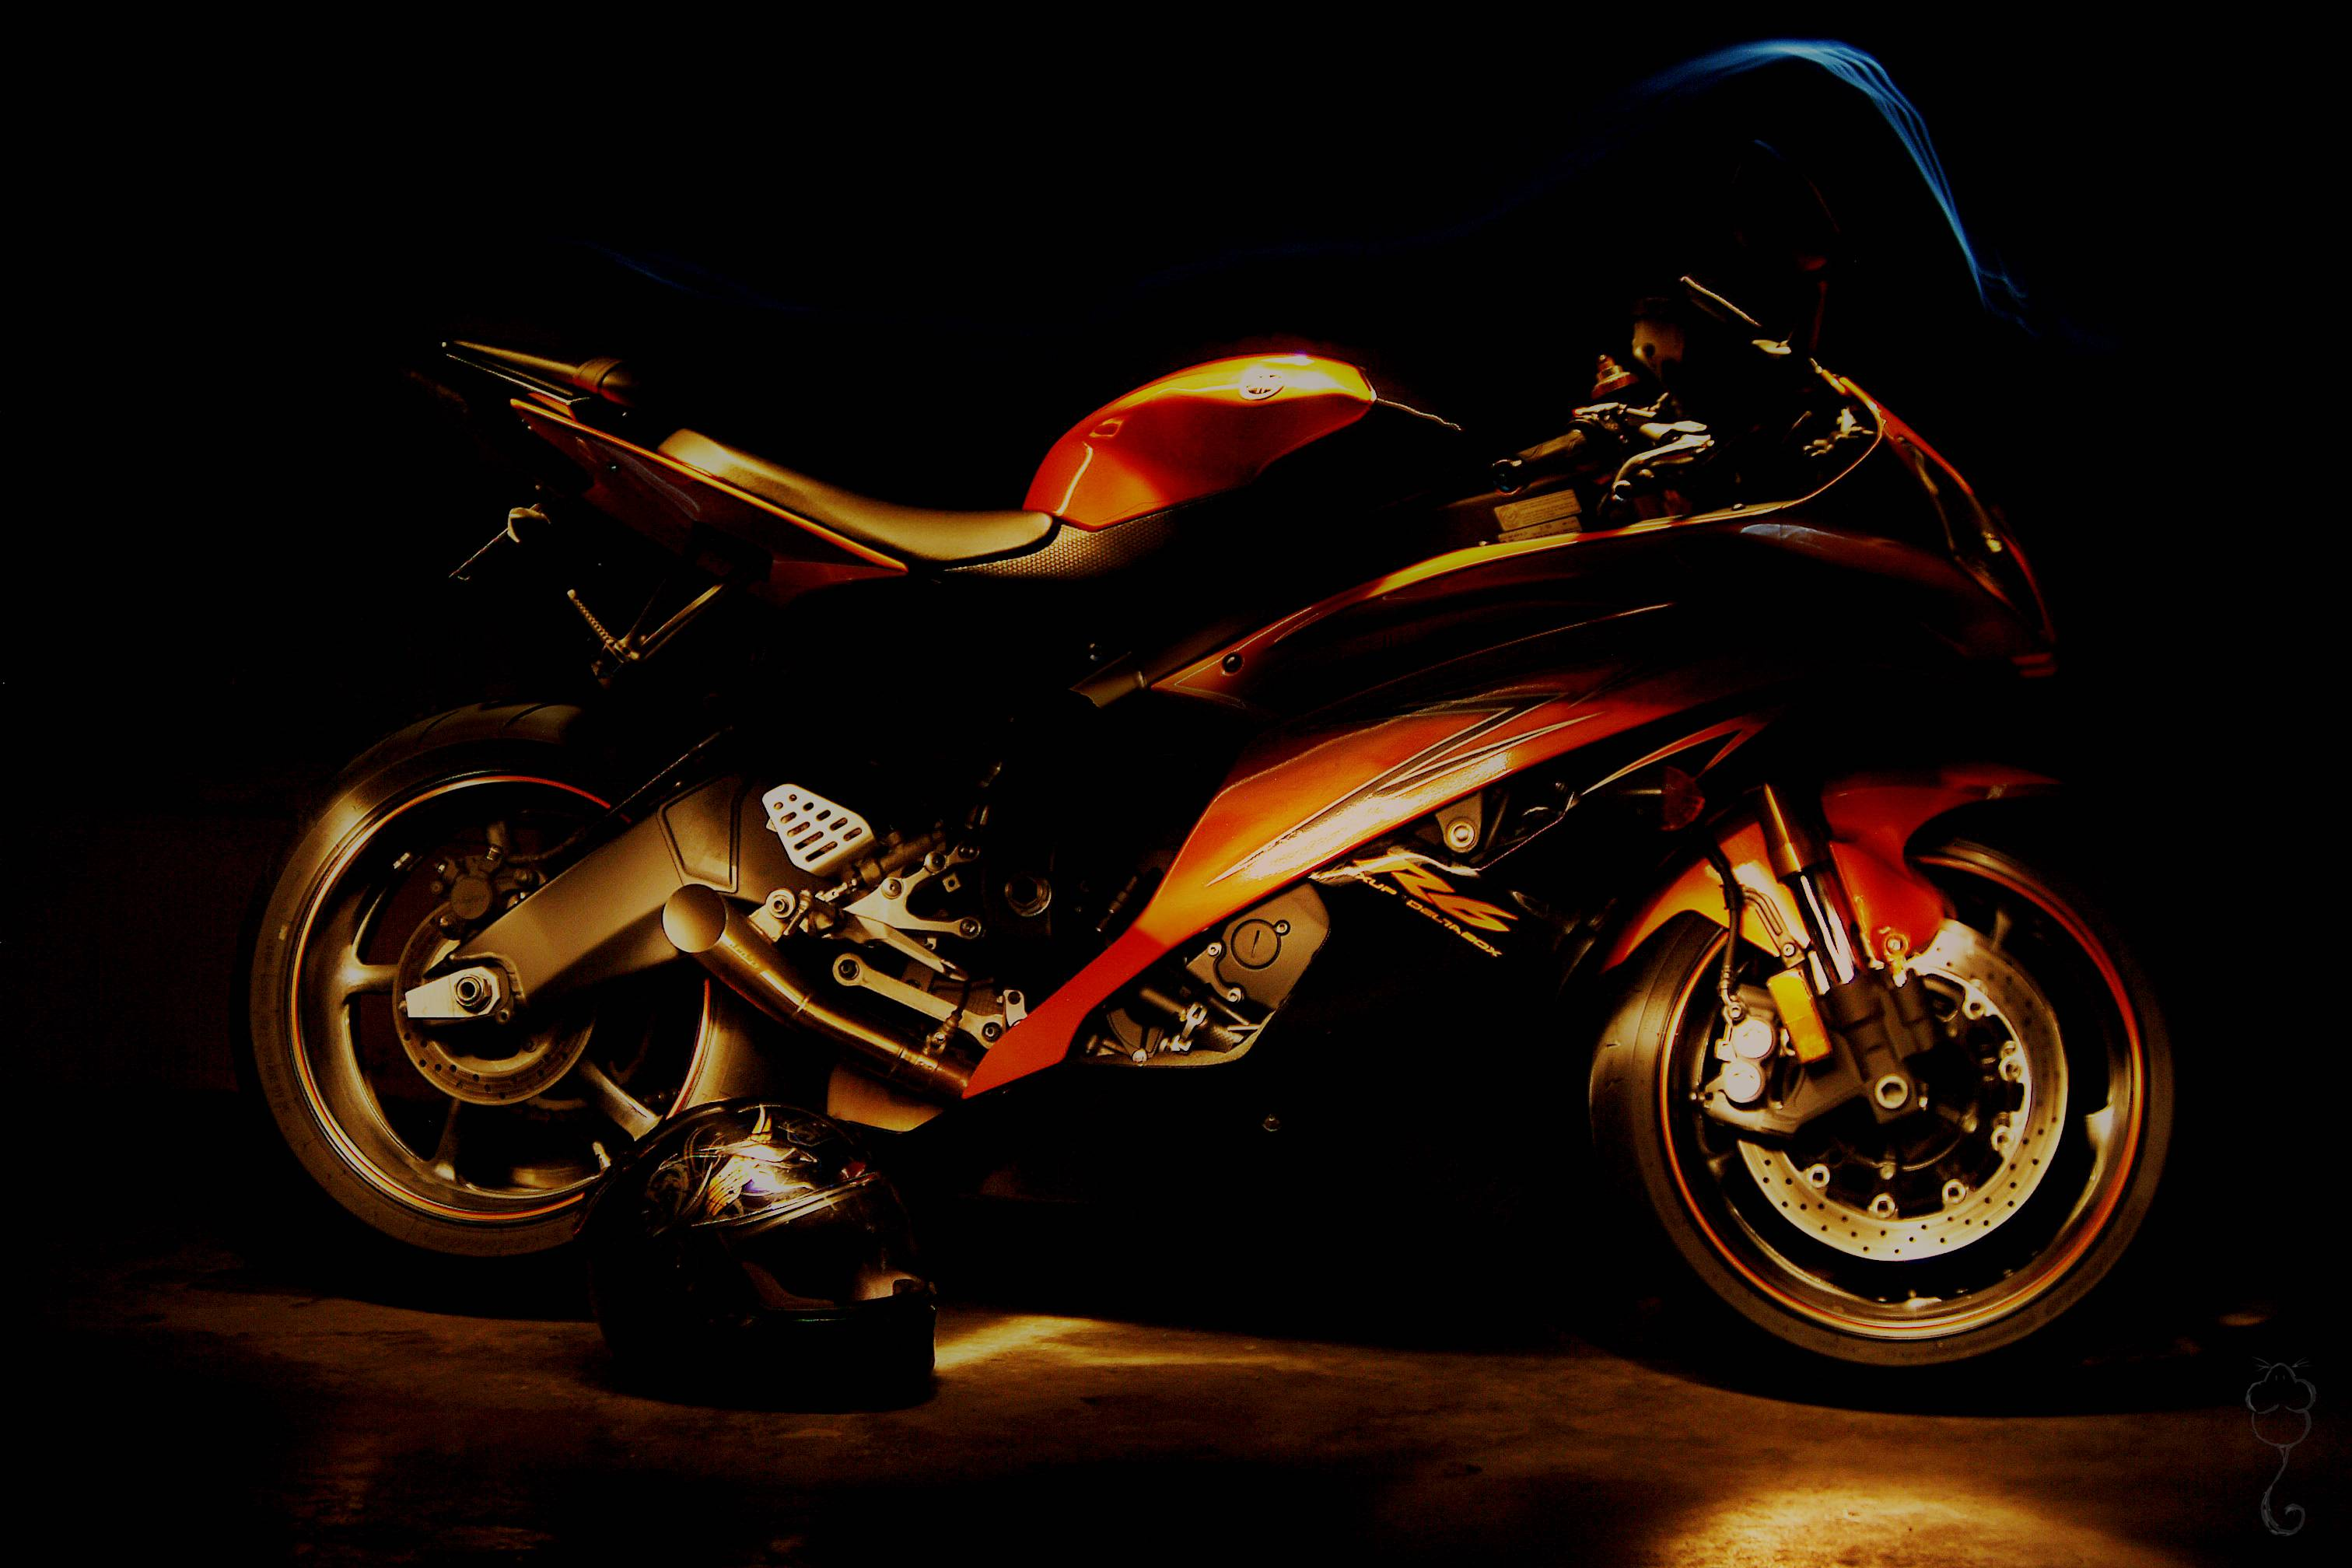 motorcycle bike hd photo  Motorbike Wallpapers - Wallpaper Cave